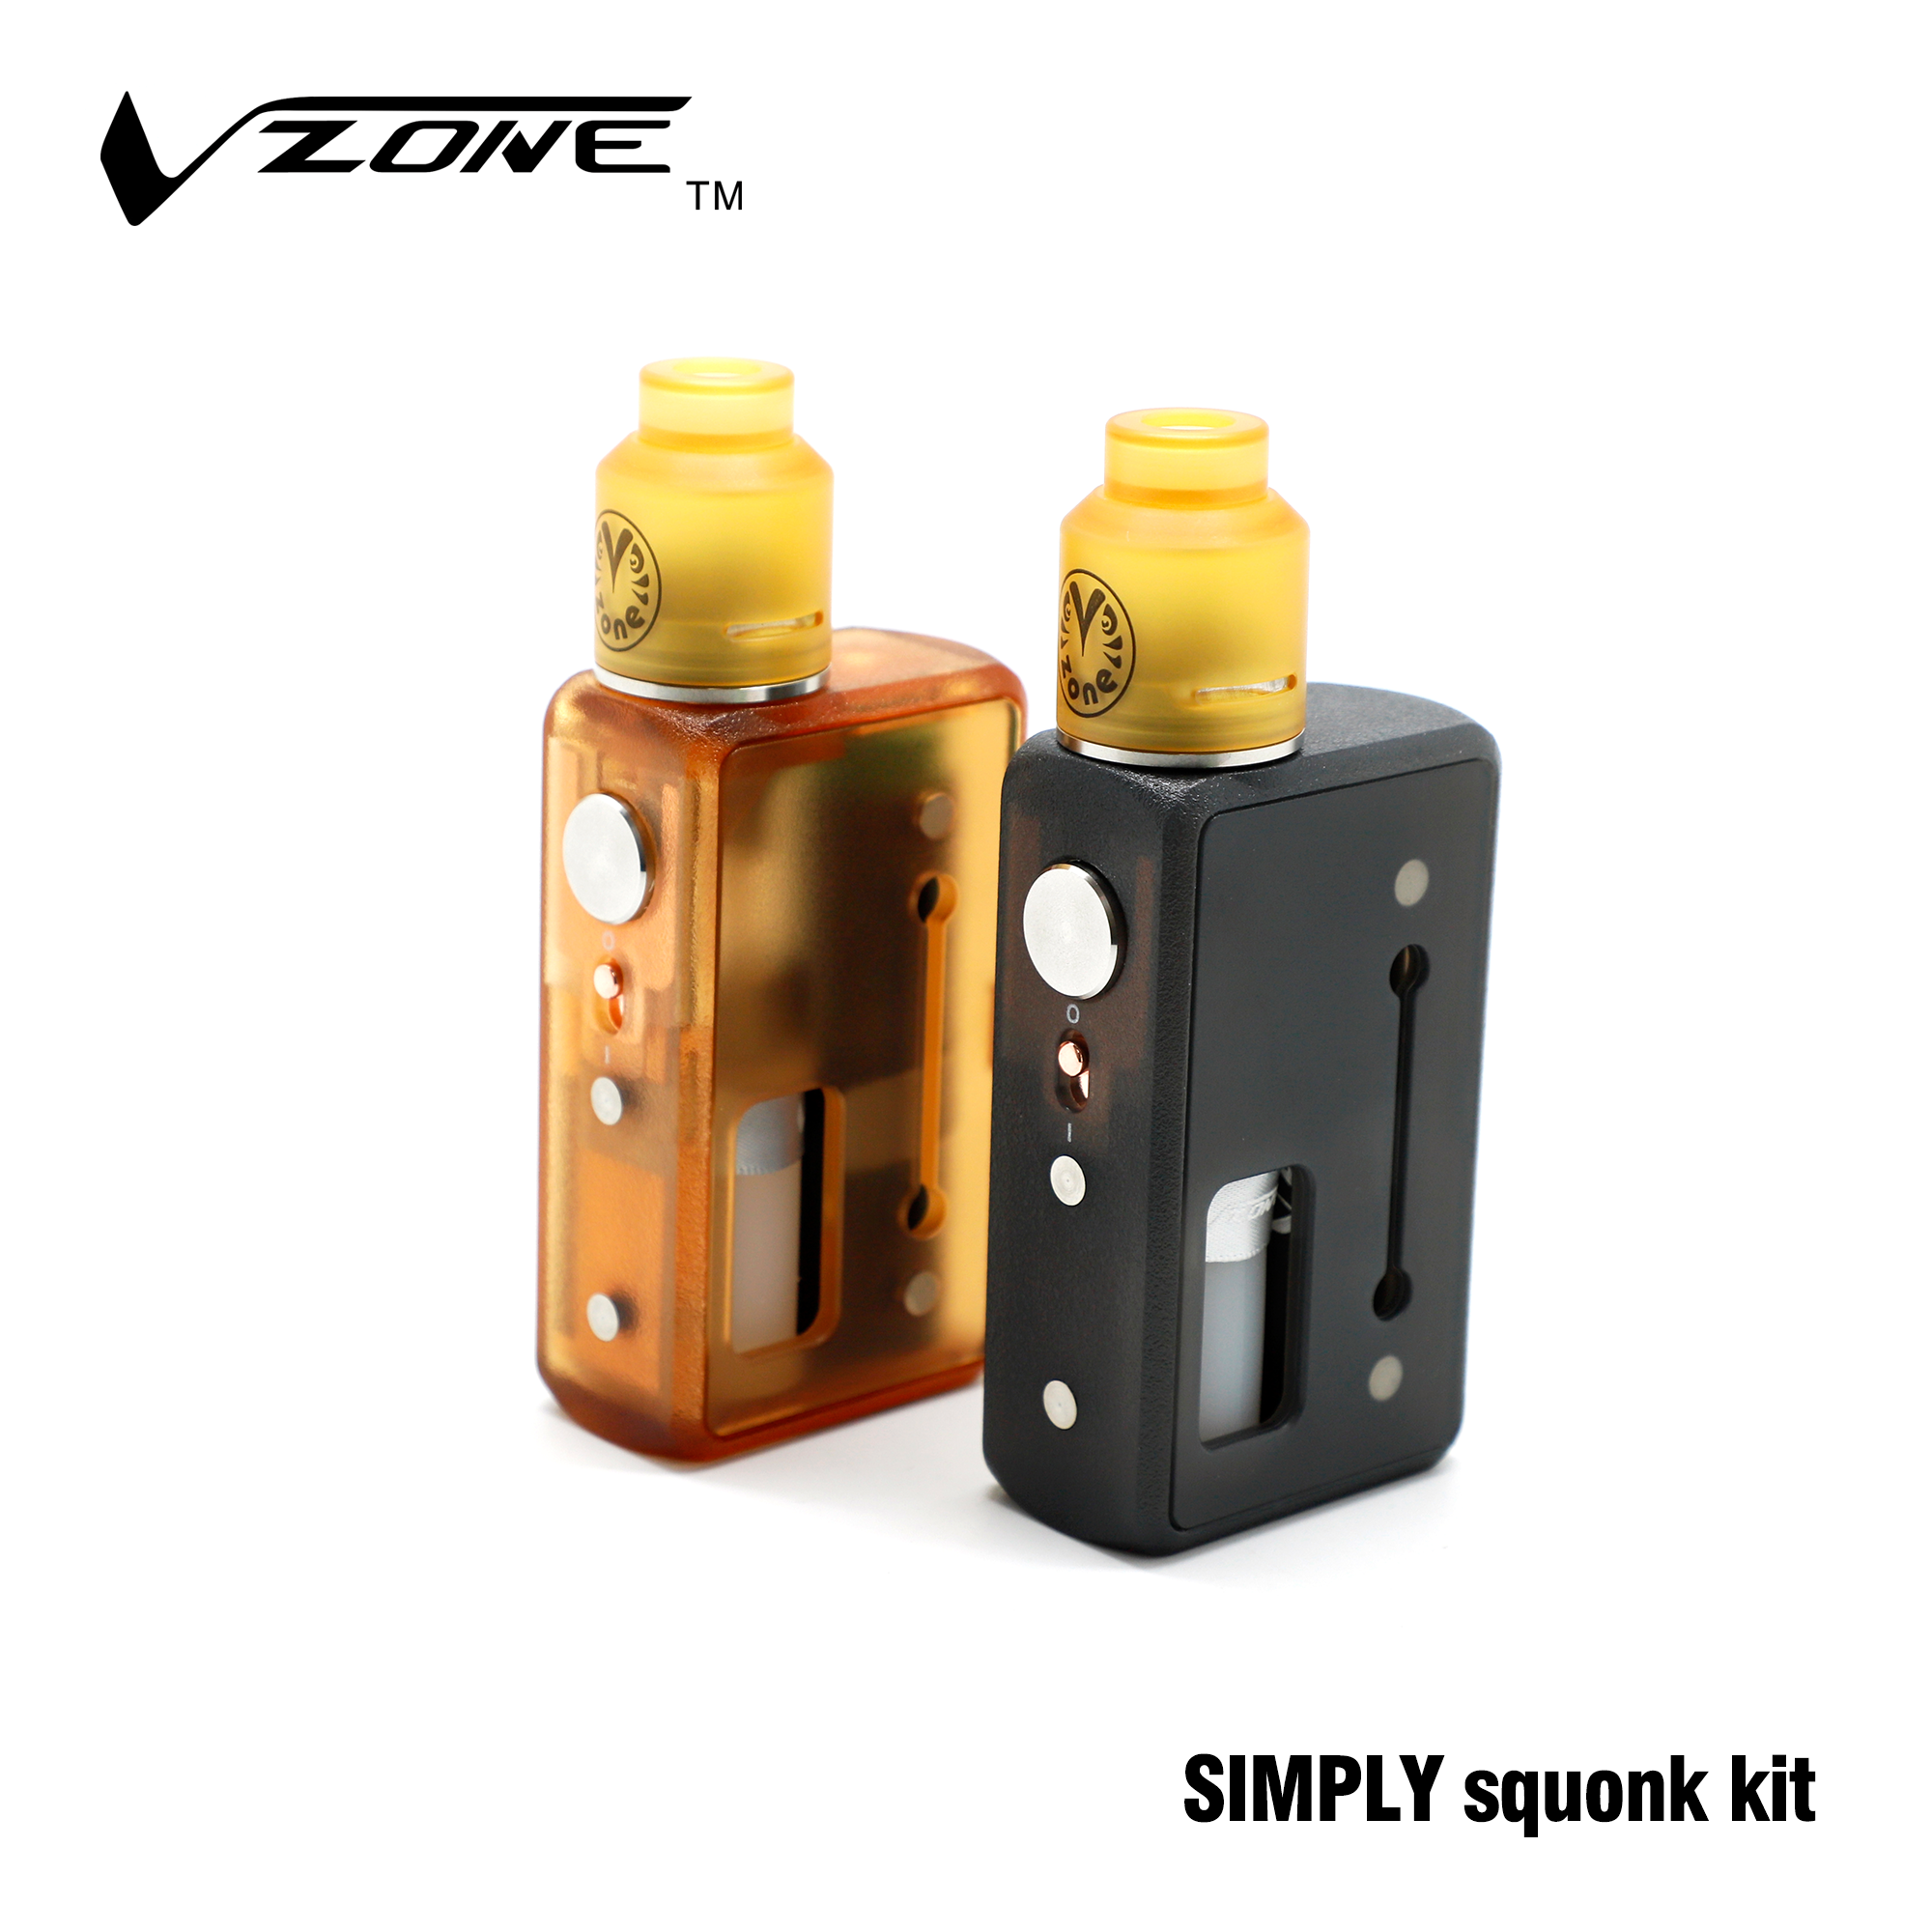 PET acoustic vzone ego d vape pen cigarette urdu english translation ce4 single kit 3/8 TK 6inch L by Carton Simply Squonk